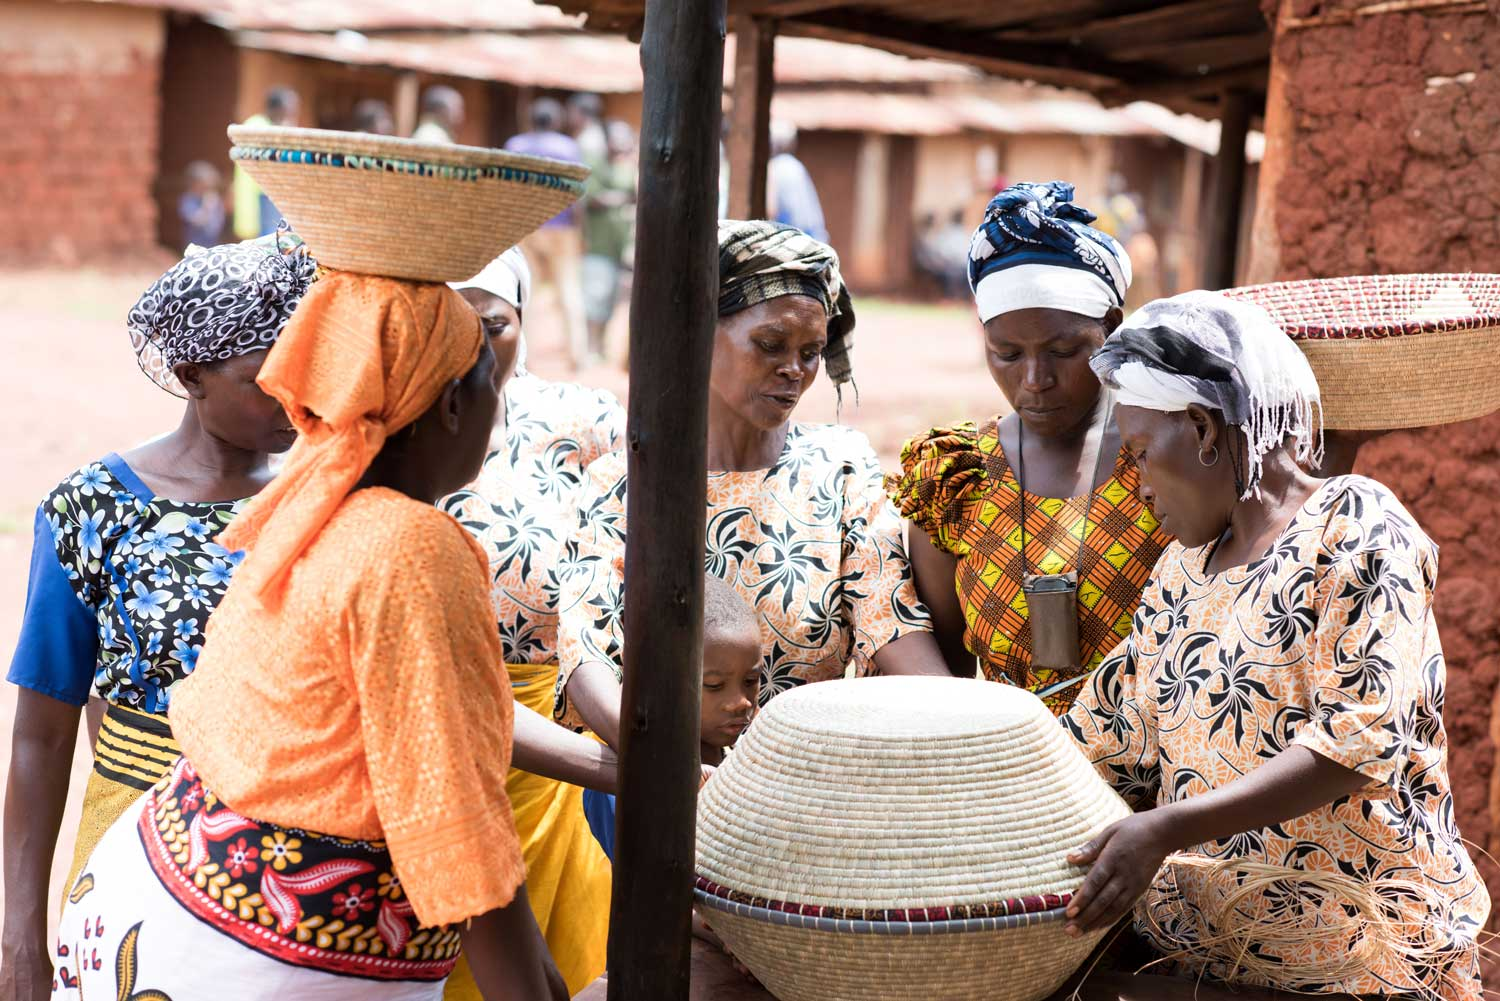 Women artisans discussing products